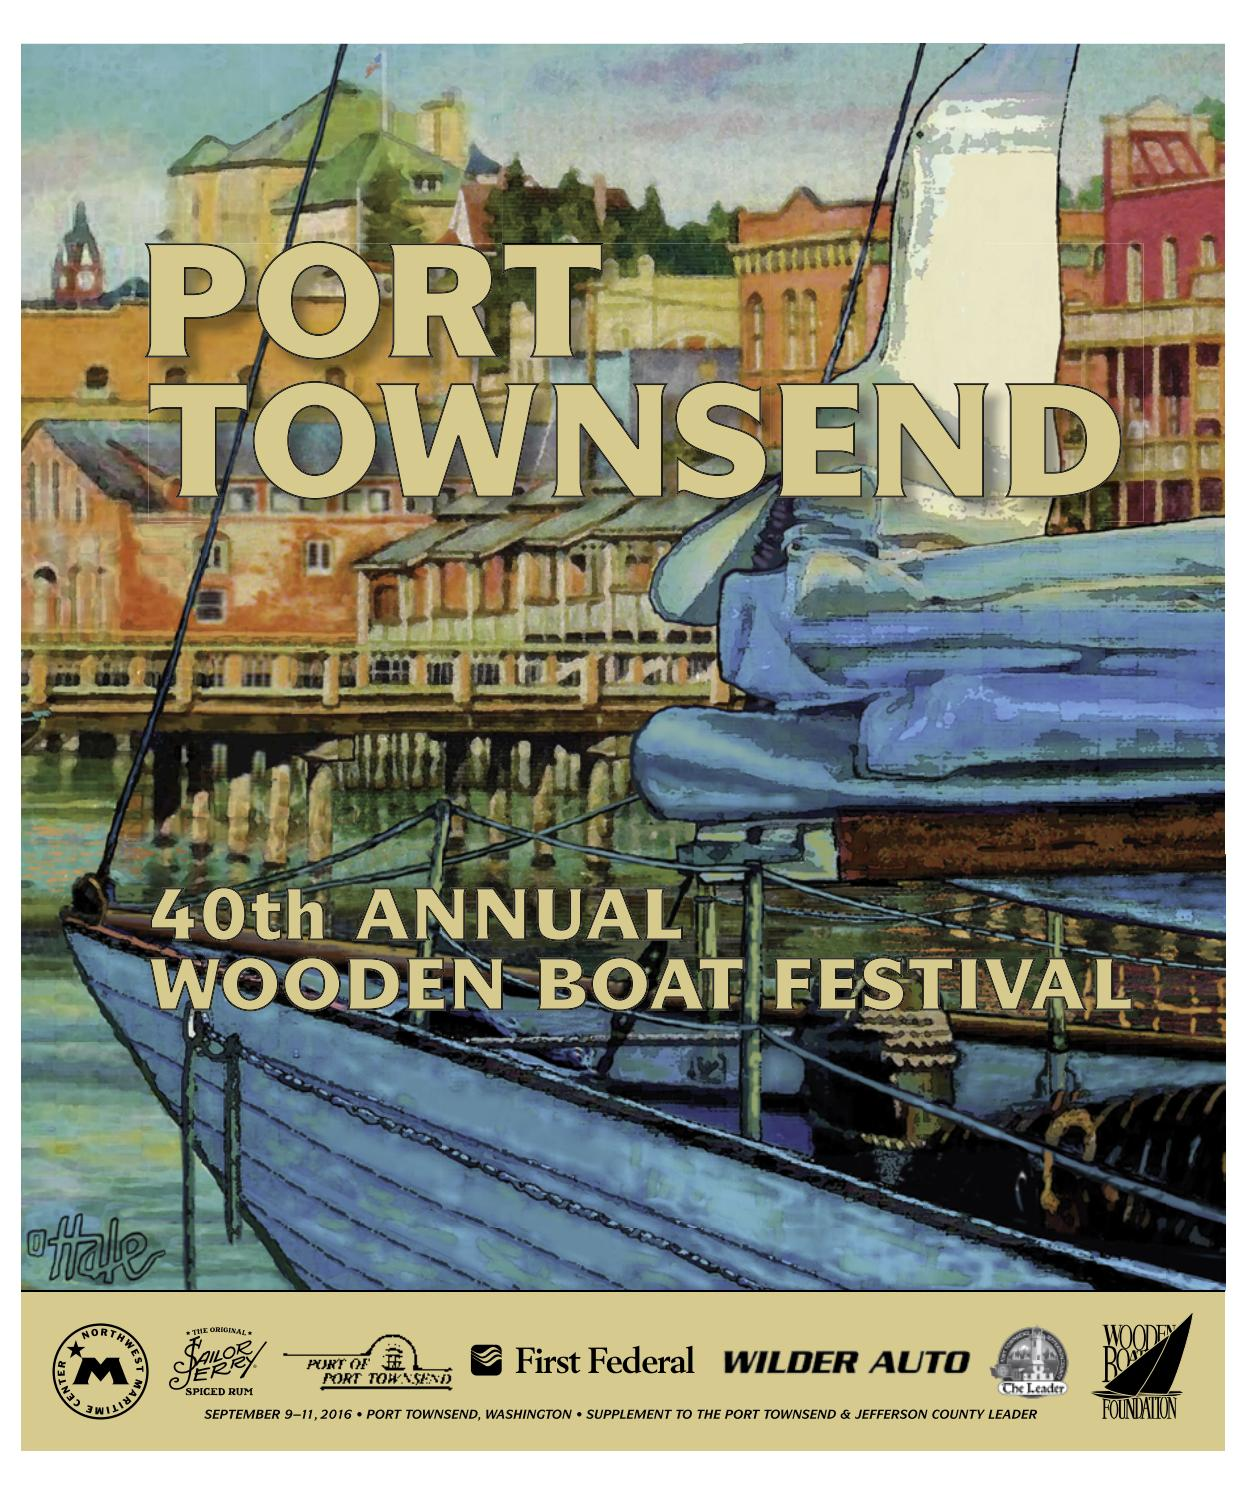 Port townsend wooden boat festival 2016 program by port townsend leader issuu